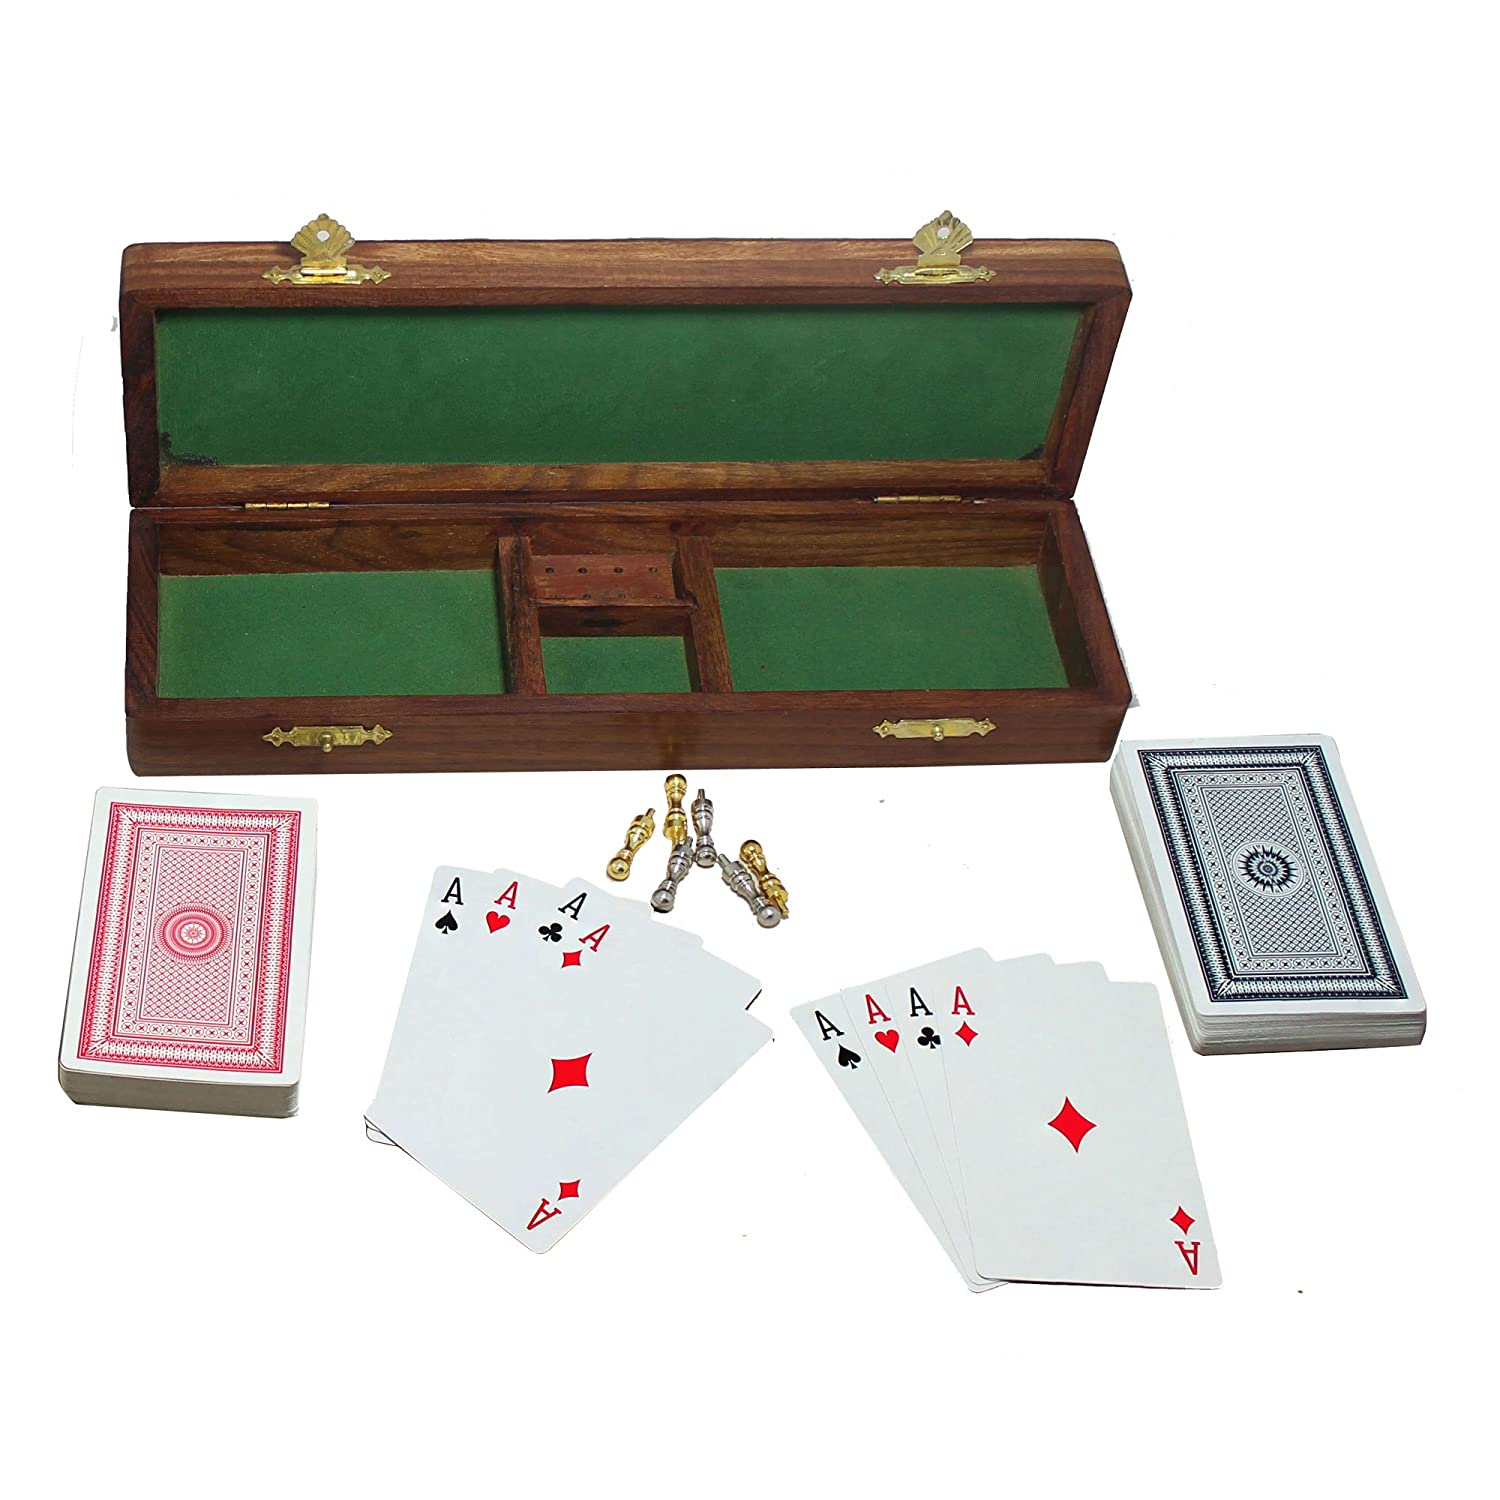 RoyaltyRoute Wooden Cribbage Board Game 2 Playing Cards Deck 6 Metal Cribbage Pegs Christmas Gifts